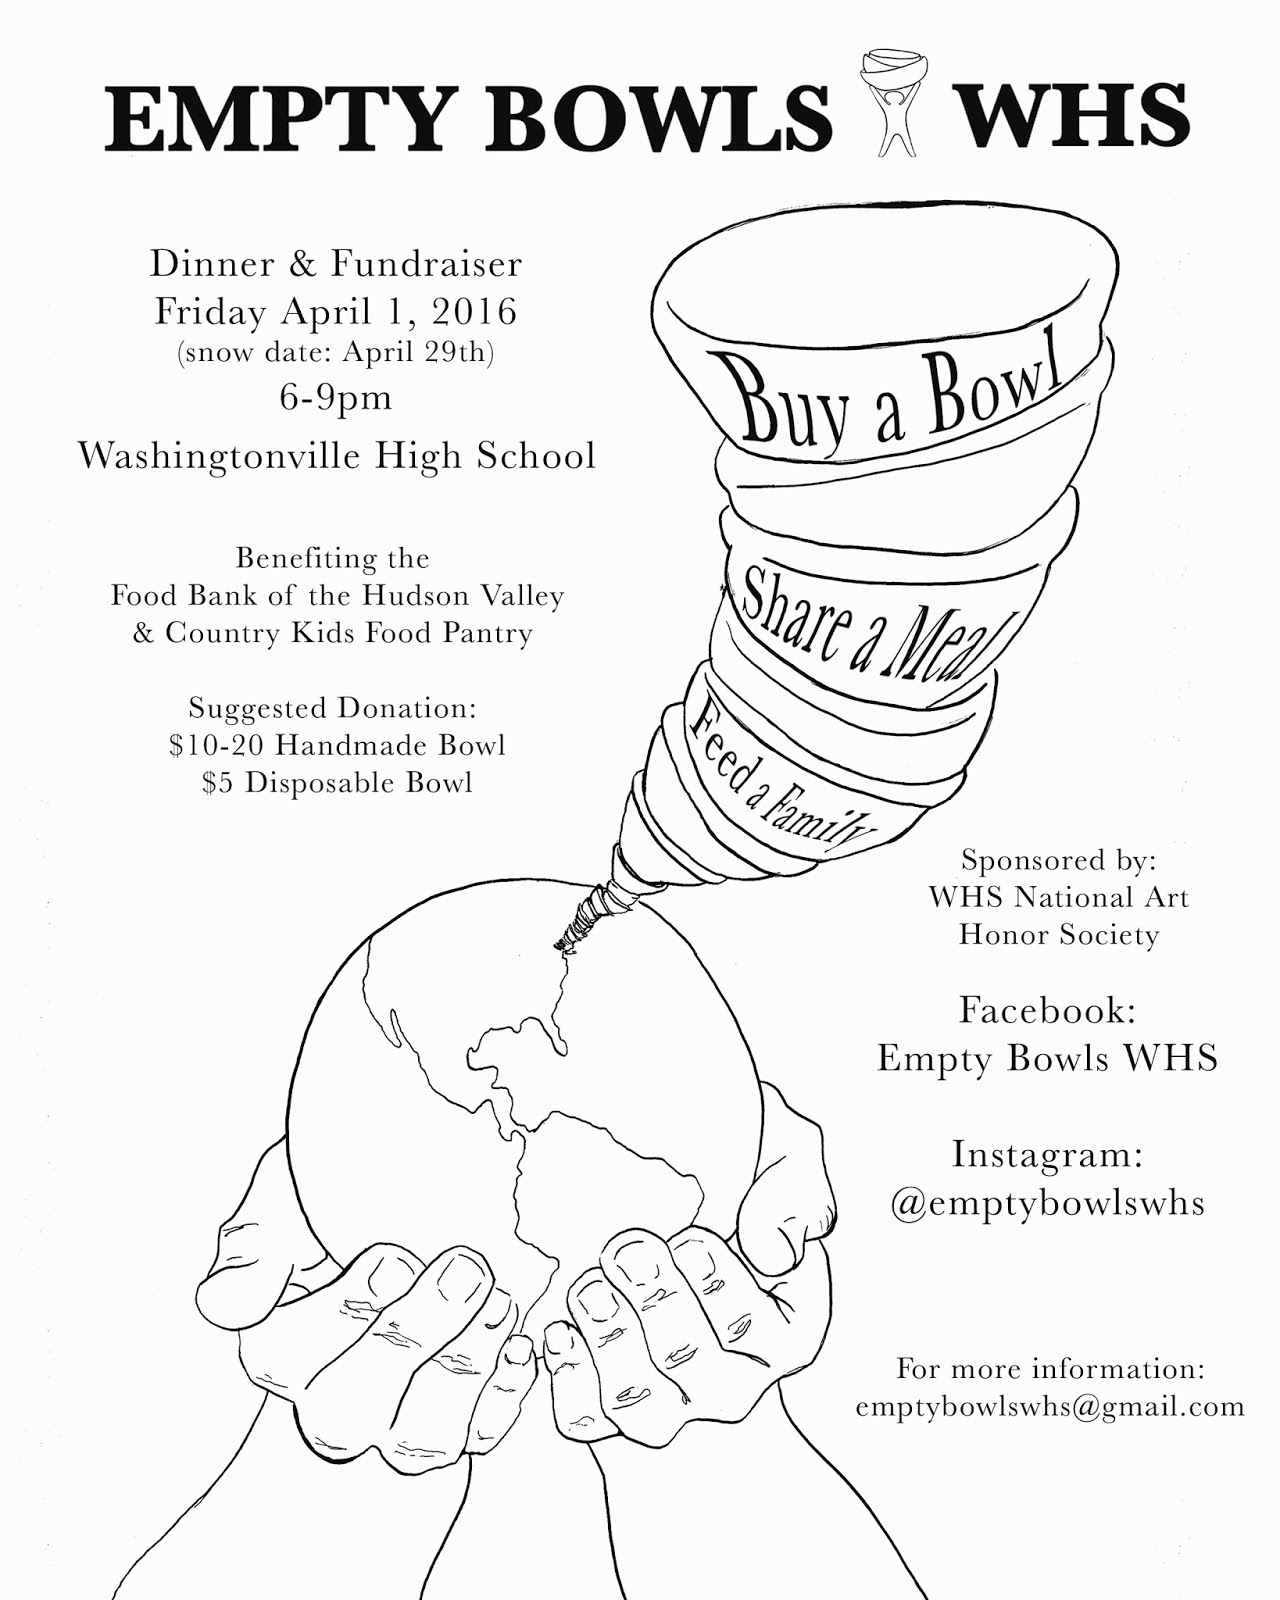 Poster design for class 5 - Both The Empty Bowls Whs Logo The Little Figure With Holding The Bowls Above Its Head And The Poster Design Were Created By Students From The National Art